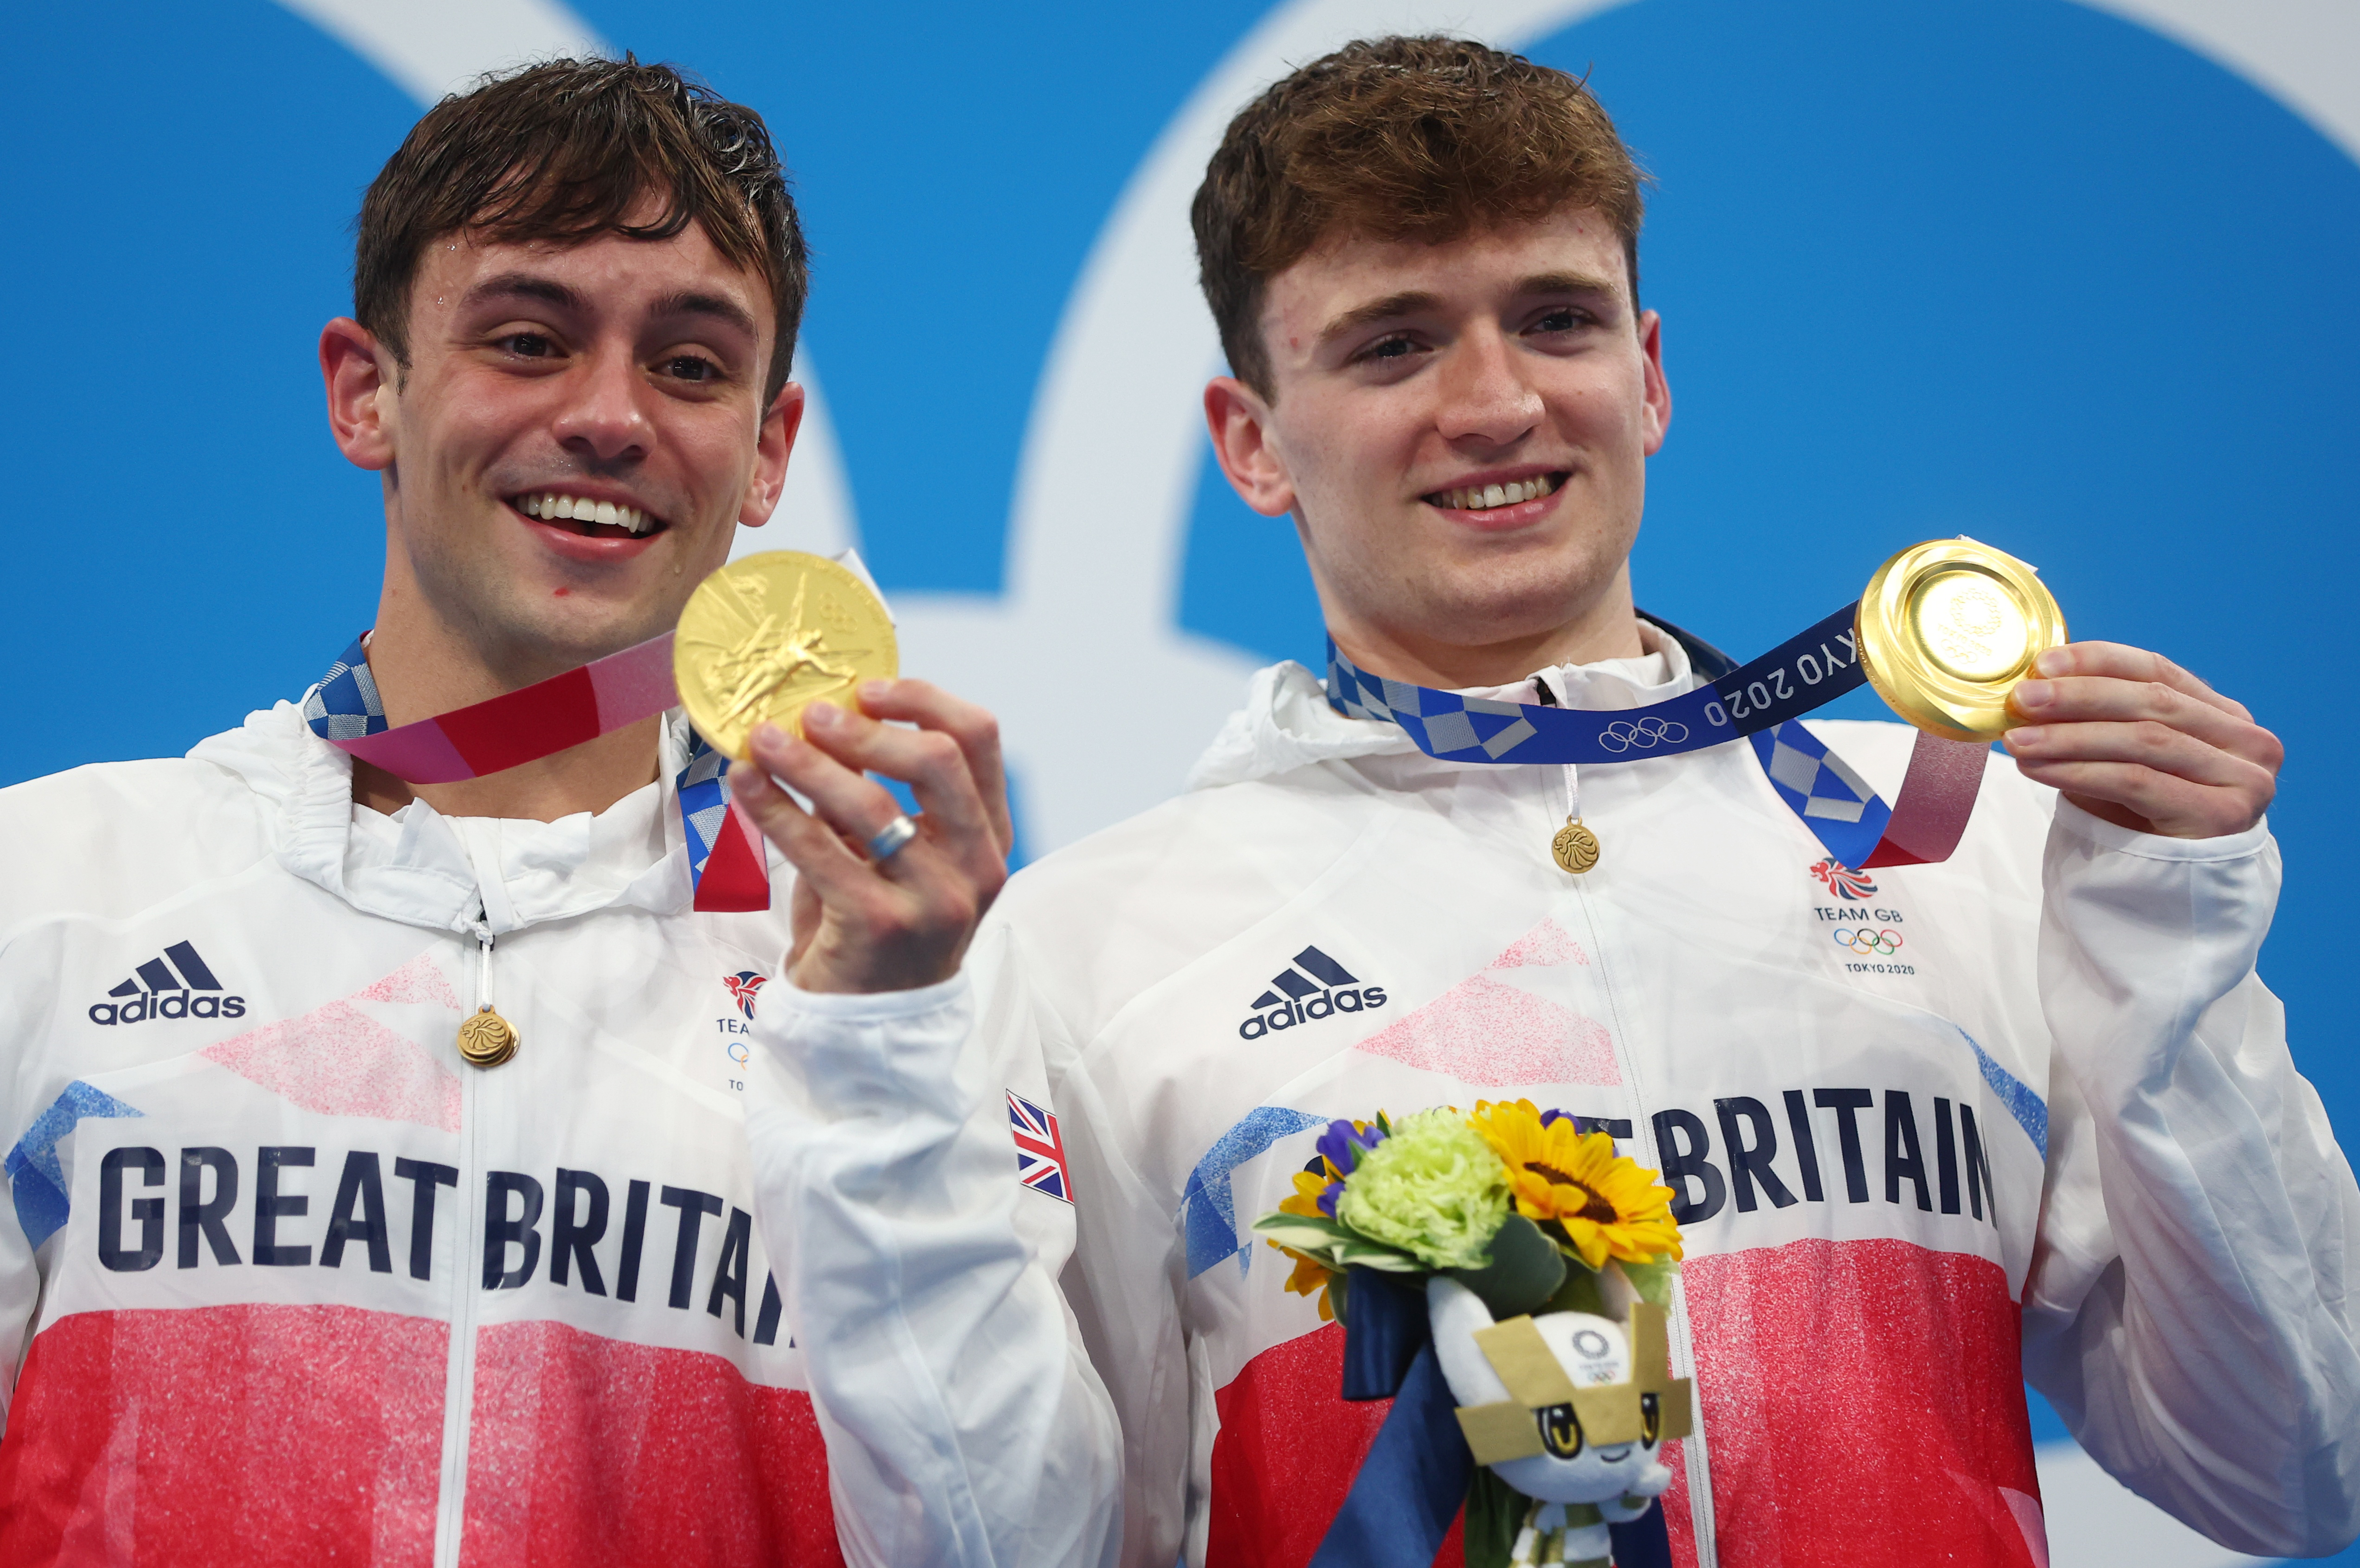 Tokyo 2020 Olympics - Diving - Men's 10m Platform Synchro - Medal Ceremony - Tokyo Aquatics Centre, Tokyo, Japan July 26, 2021. Thomas Daley of Britain and Matty Lee of Britain pose with the gold medal REUTERS/Kai Pfaffenbach